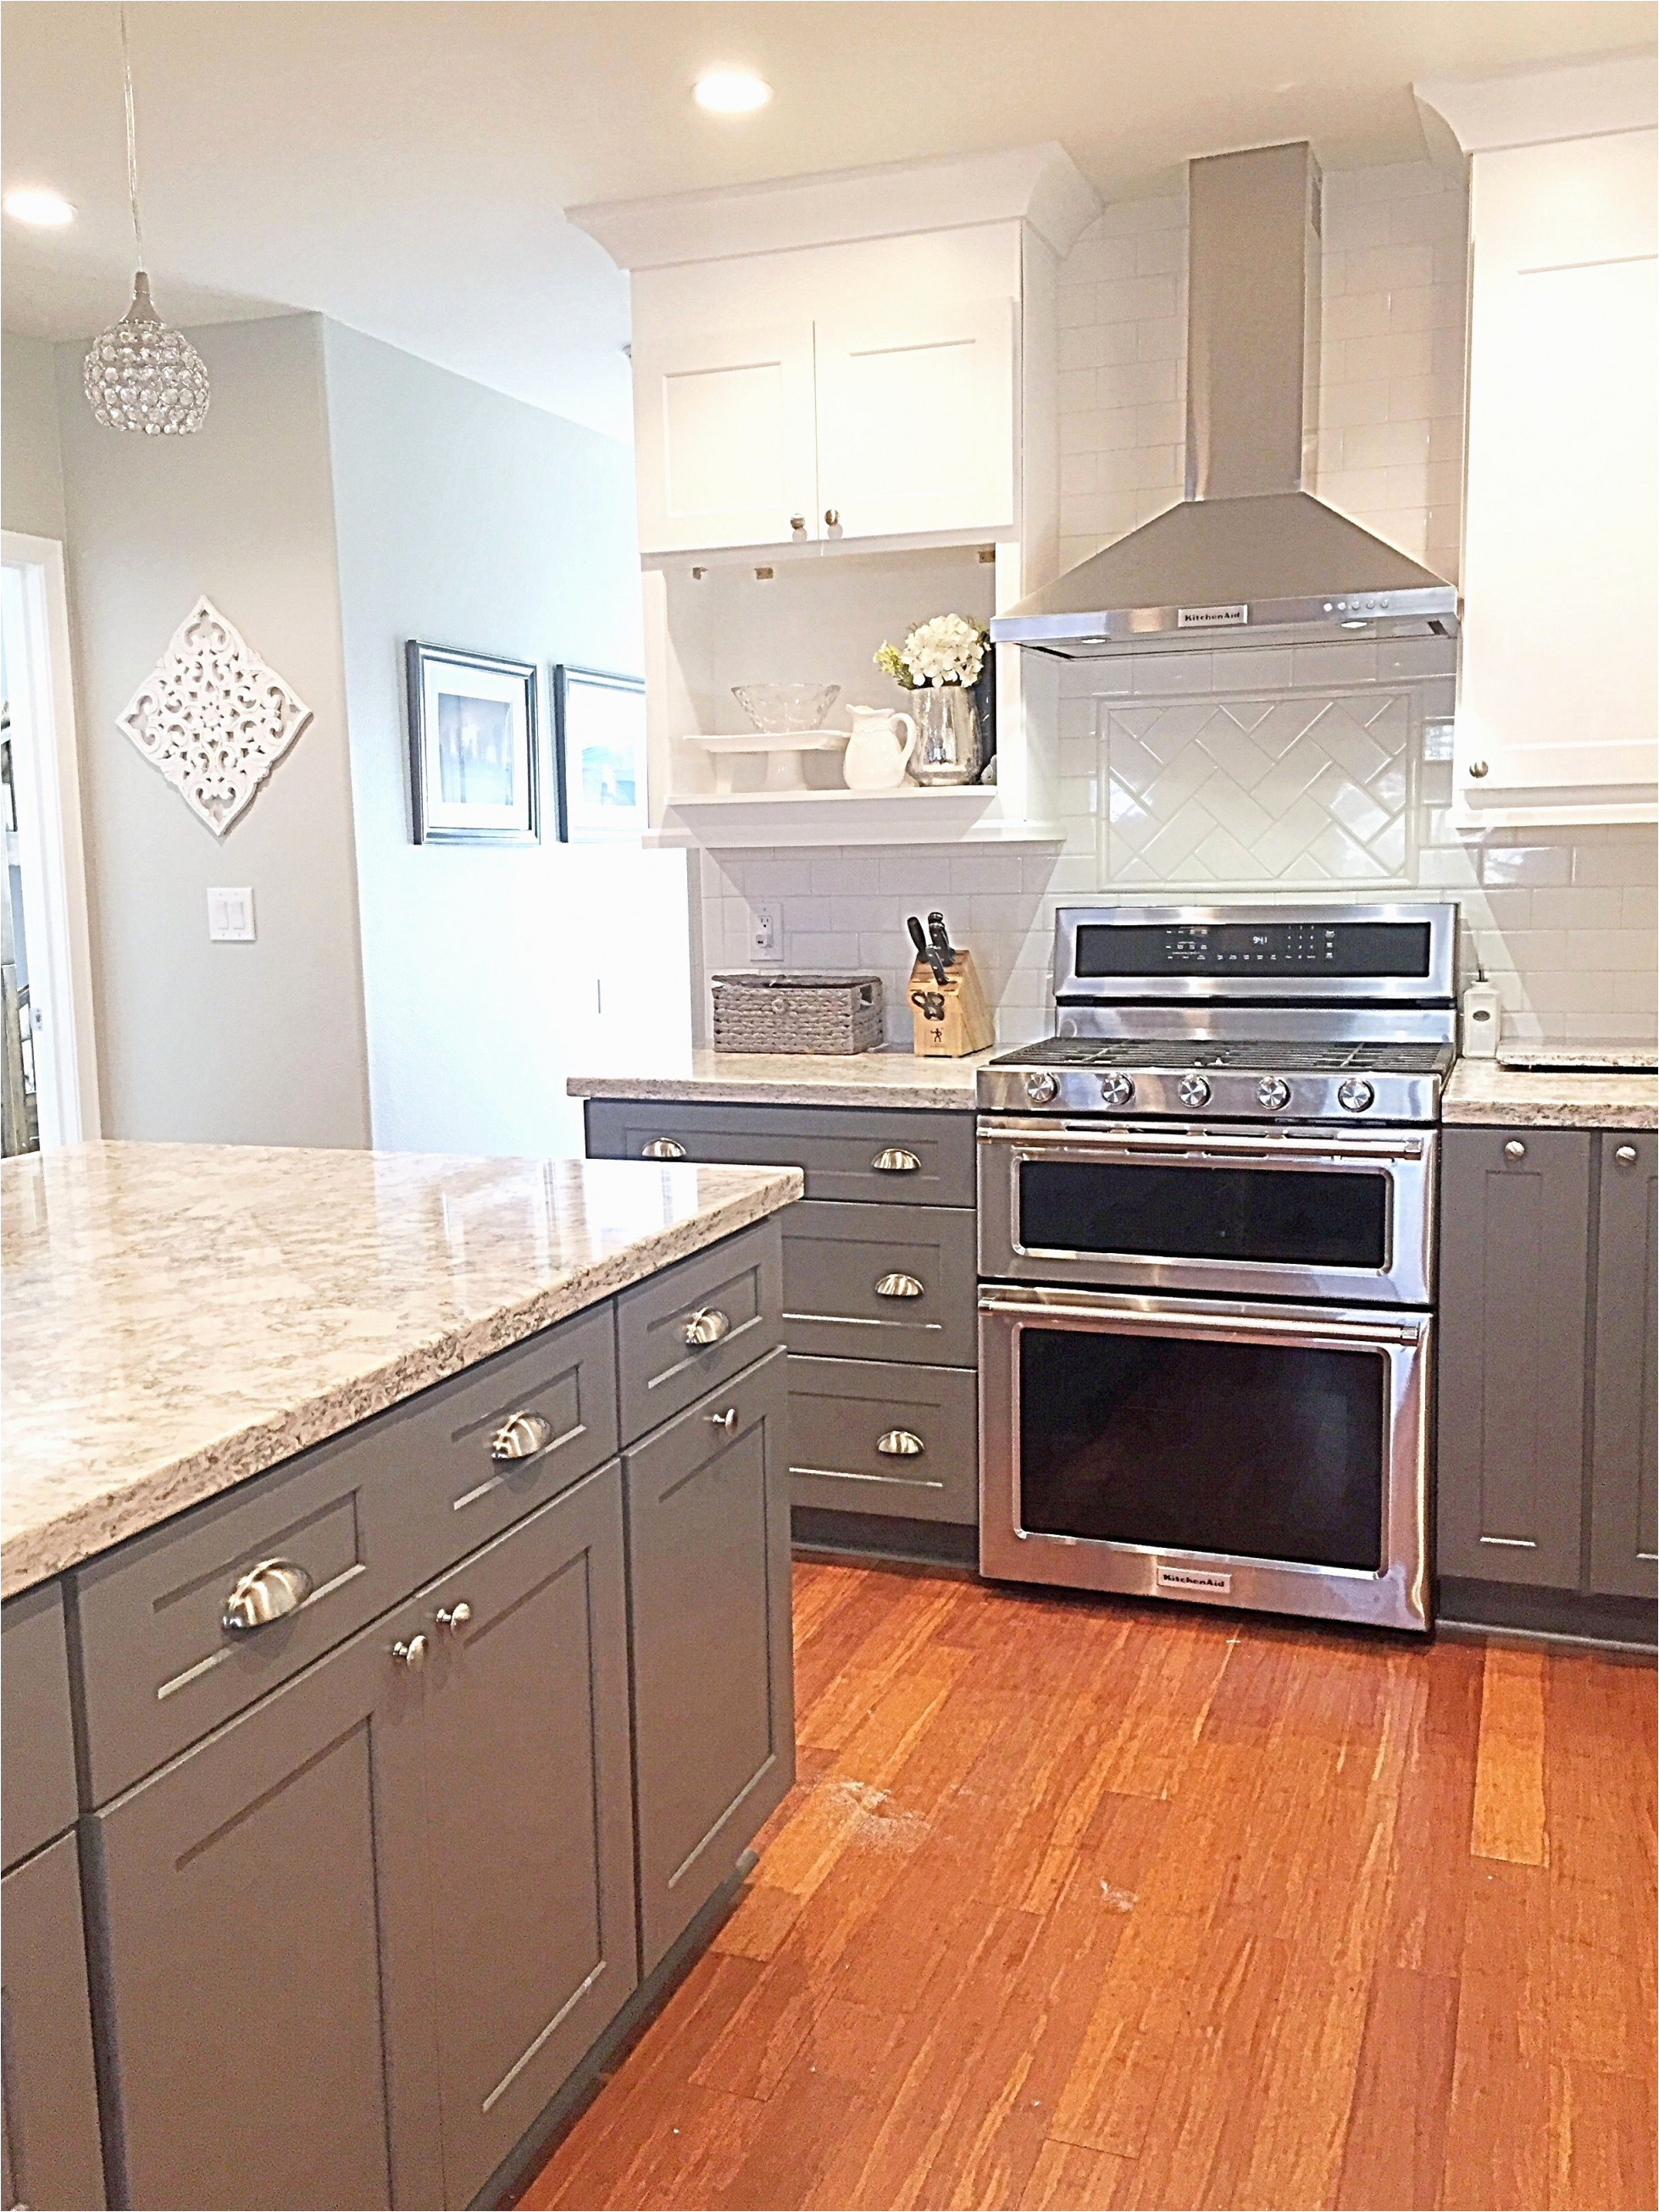 image of kitchen cabinets tucson in mutable sale tucson painting kitchen